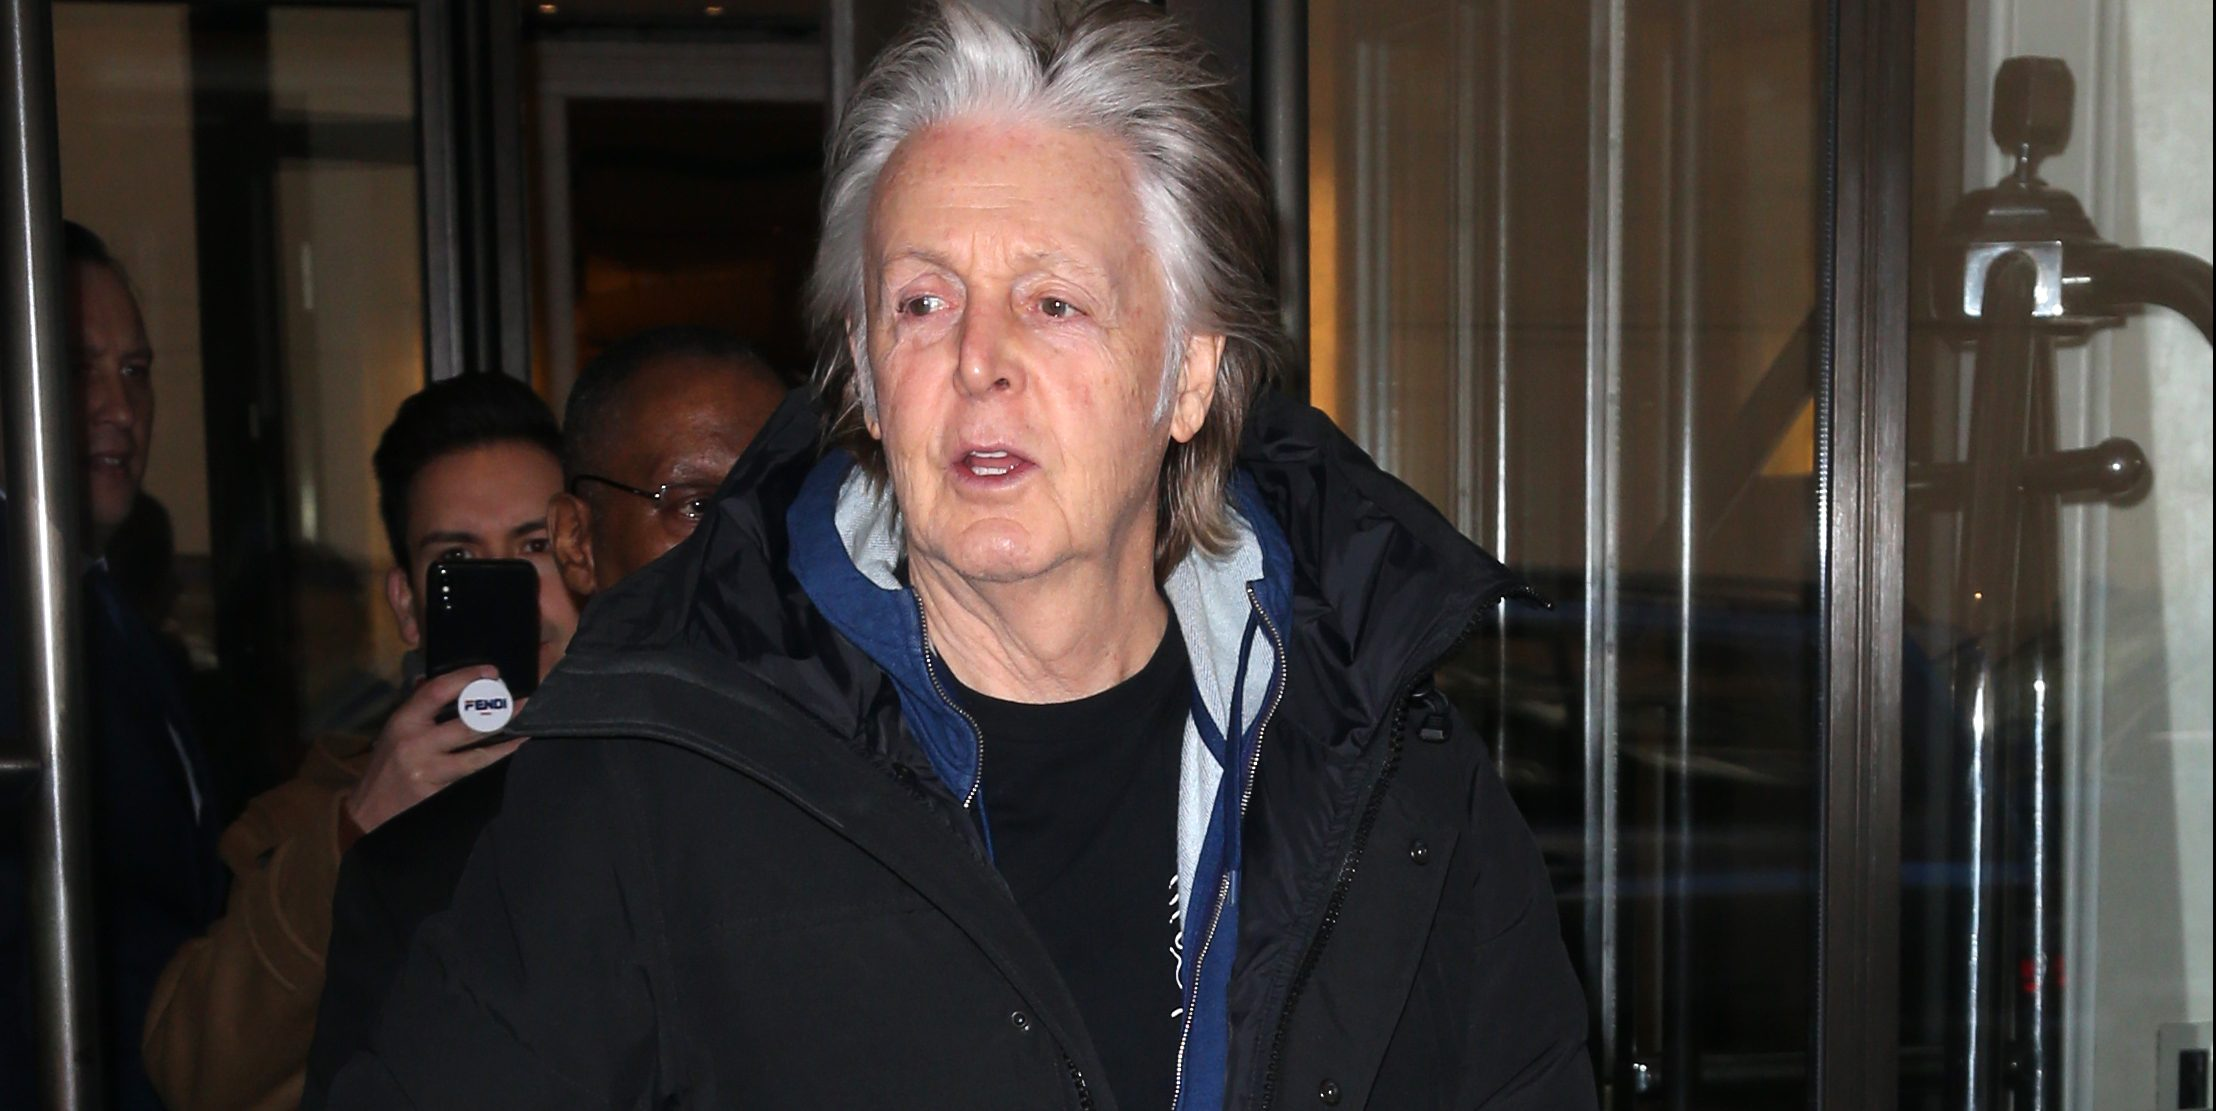 Paul McCartney out and about in New York Pictured: Sir Paul McCartney Ref: SPL5057194 220119 NON-EXCLUSIVE Picture by: SplashNews.com Splash News and Pictures Los Angeles: 310-821-2666 New York: 212-619-2666 London: 0207 644 7656 Milan: +39 02 56567623 photodesk@splashnews.com World Rights